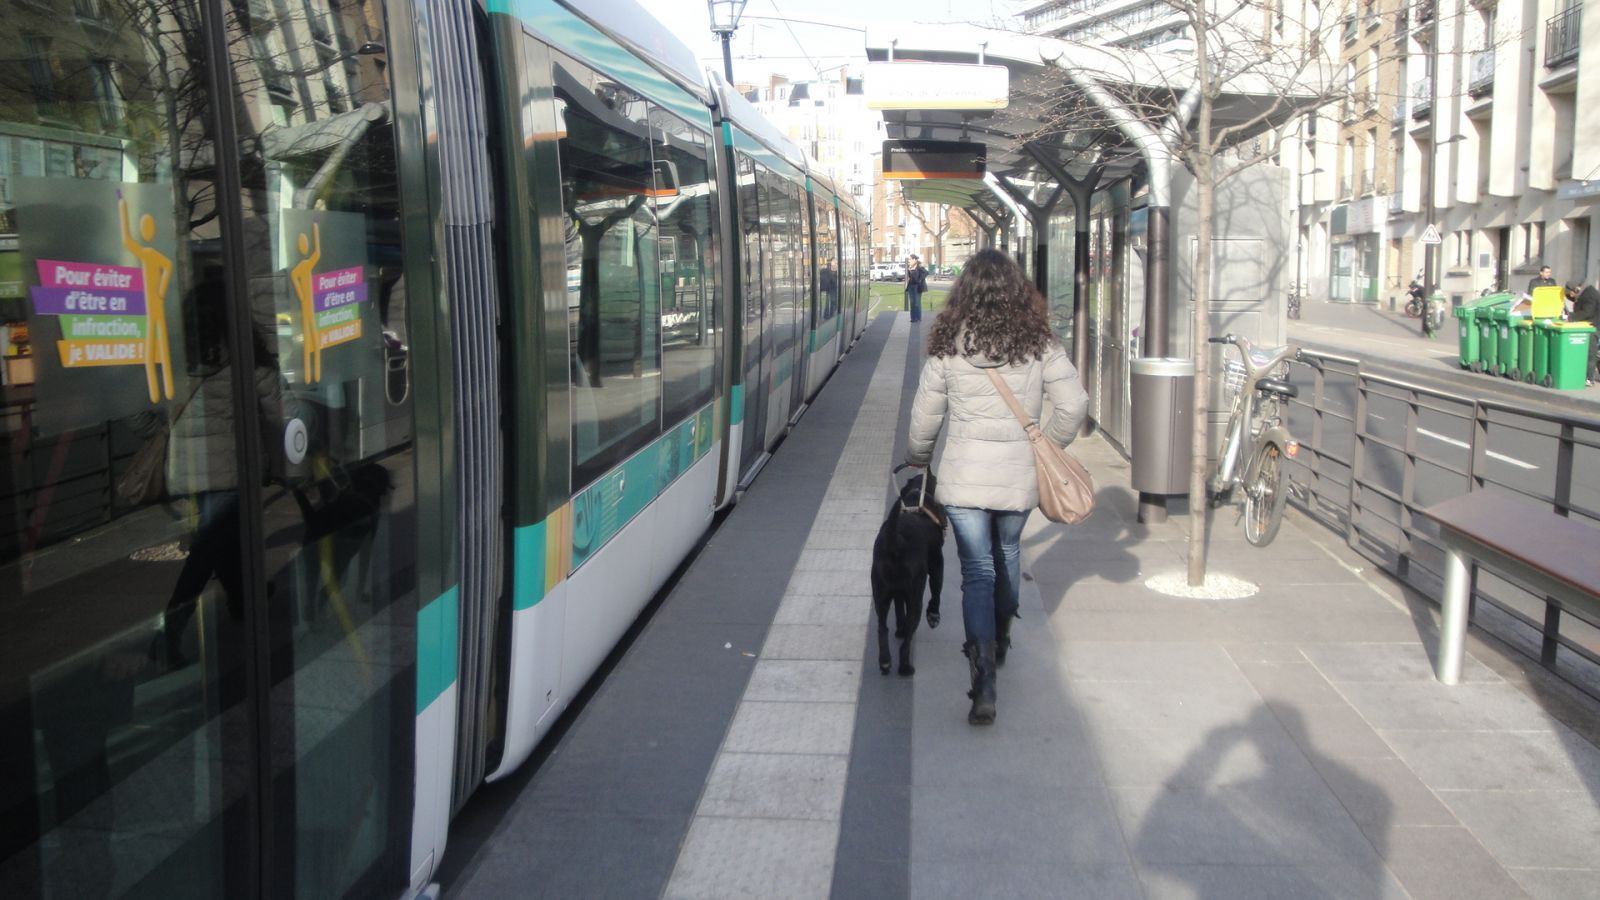 chien-guide-paris-journee-perfectionnement-tramway-00.jpg